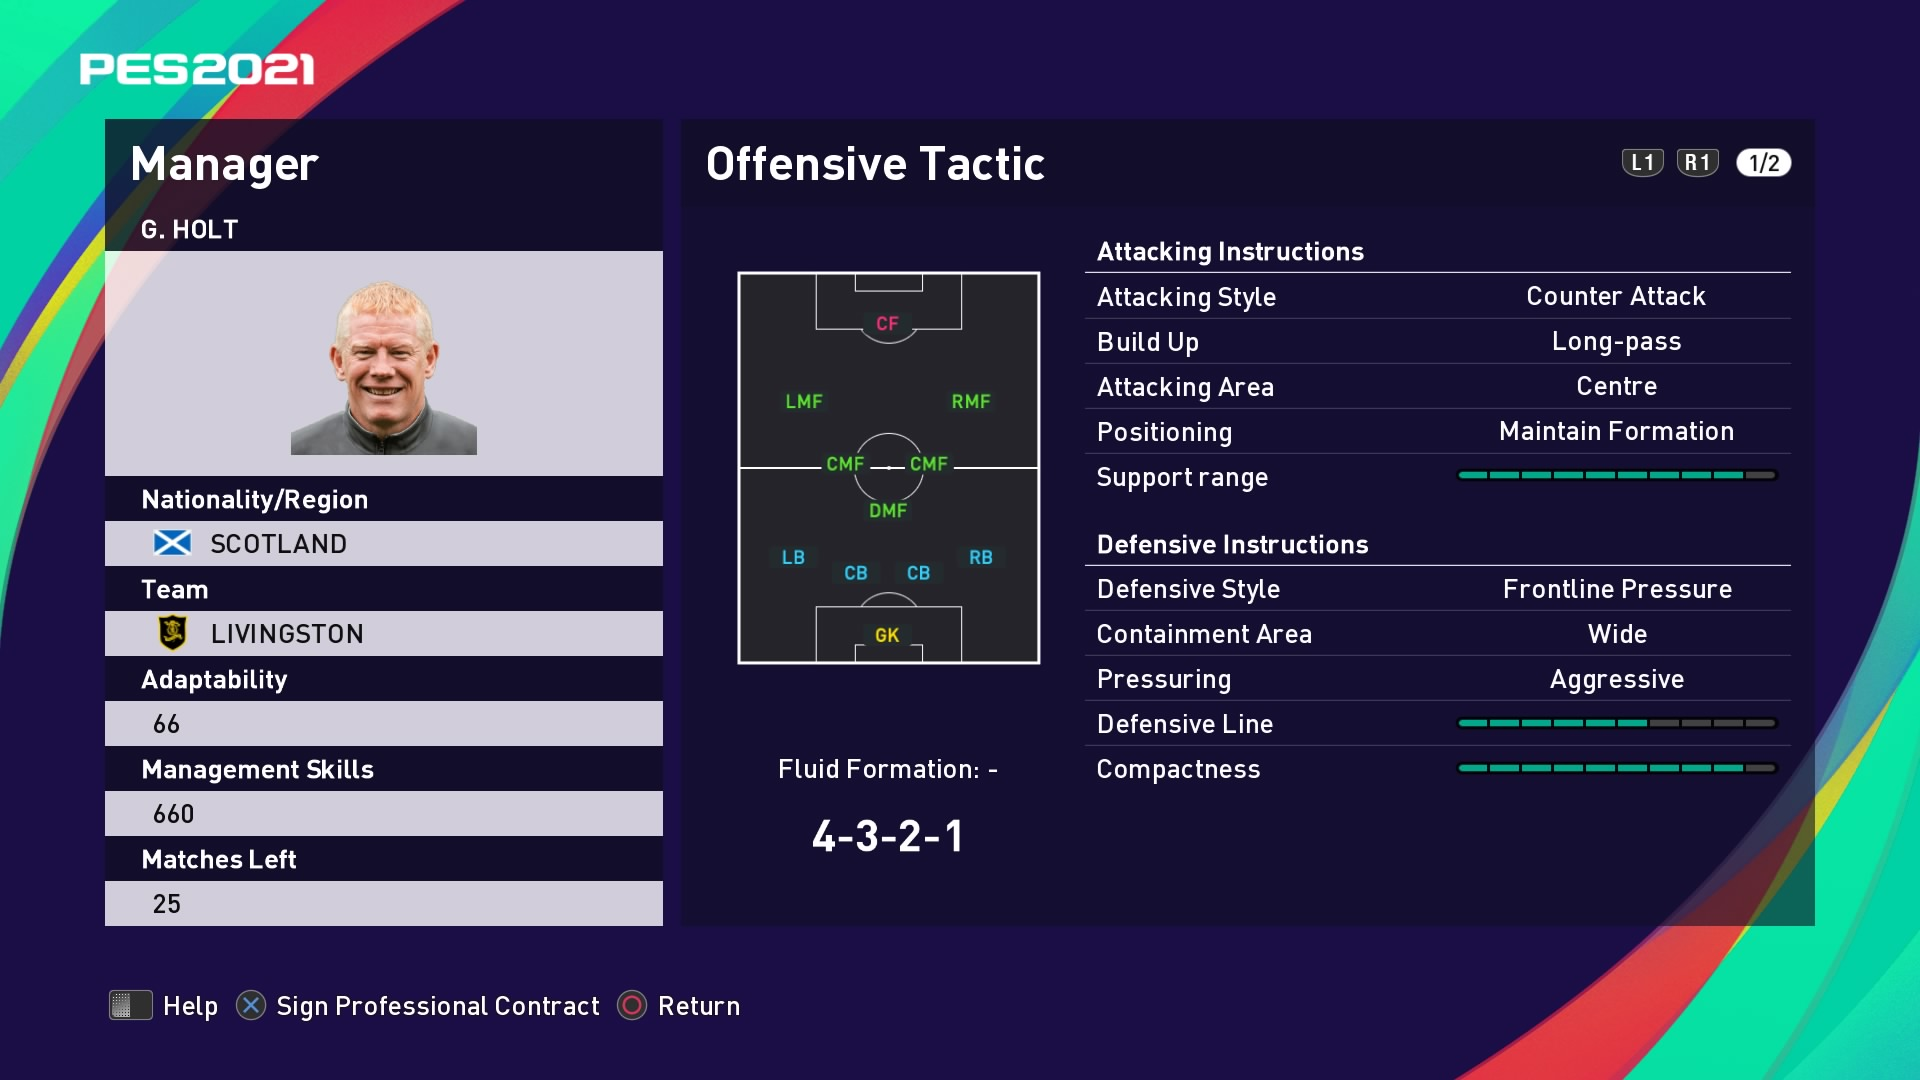 G. Holt (Gary Holt) Offensive Tactic in PES 2021 myClub